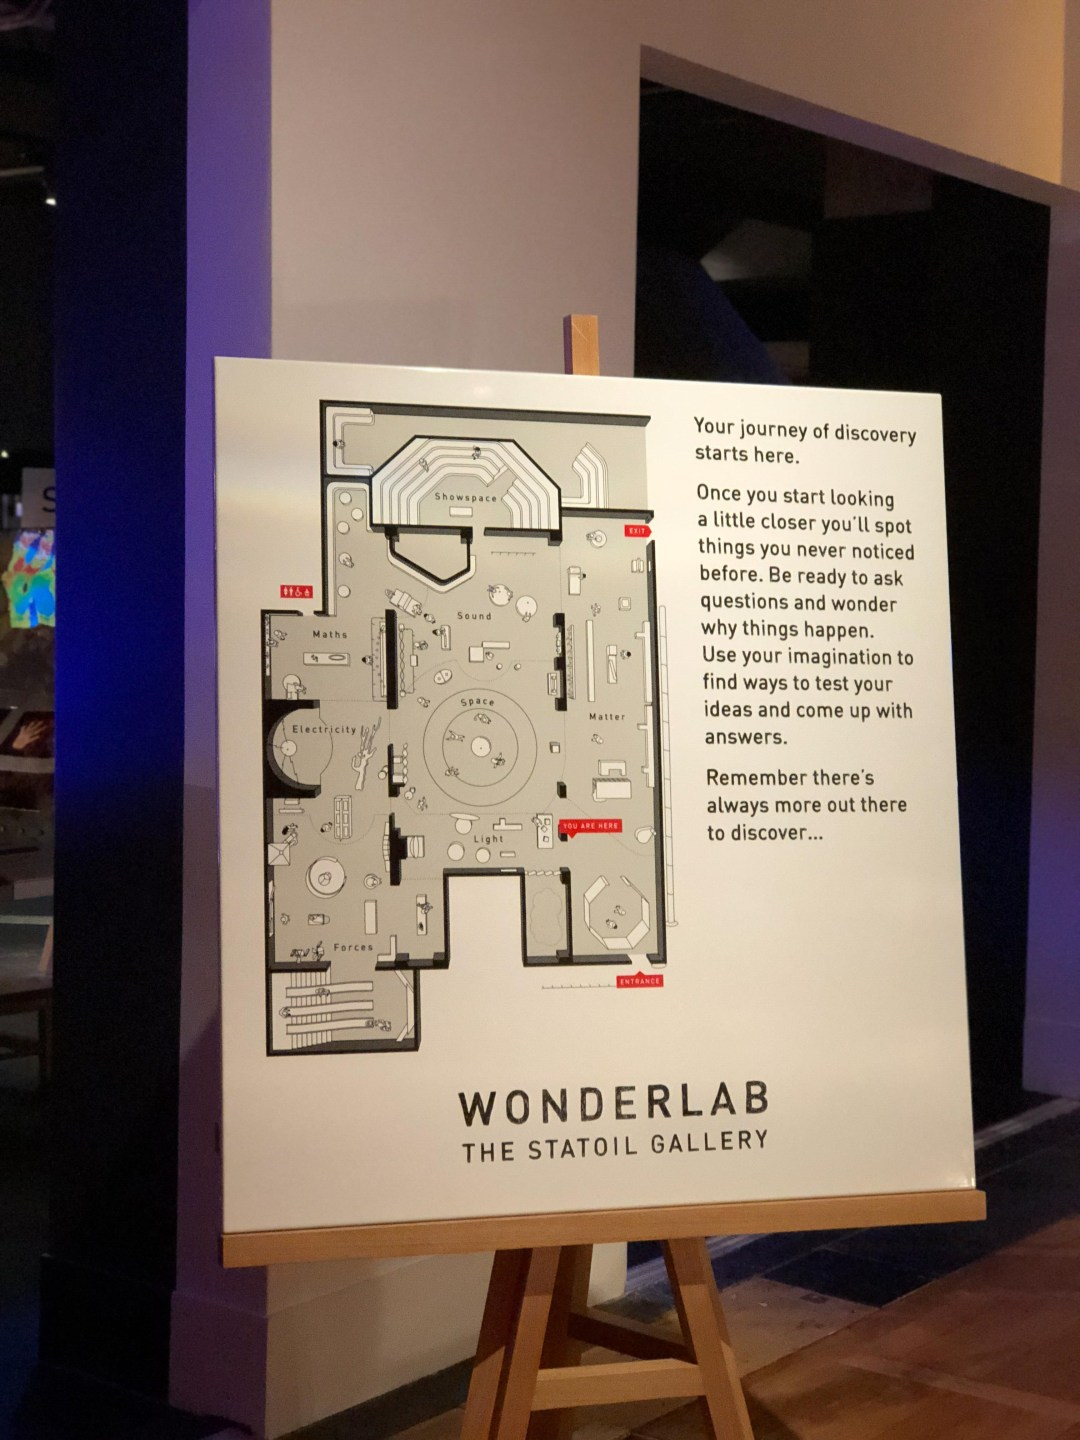 Wonderlab at The Statoil Gallery